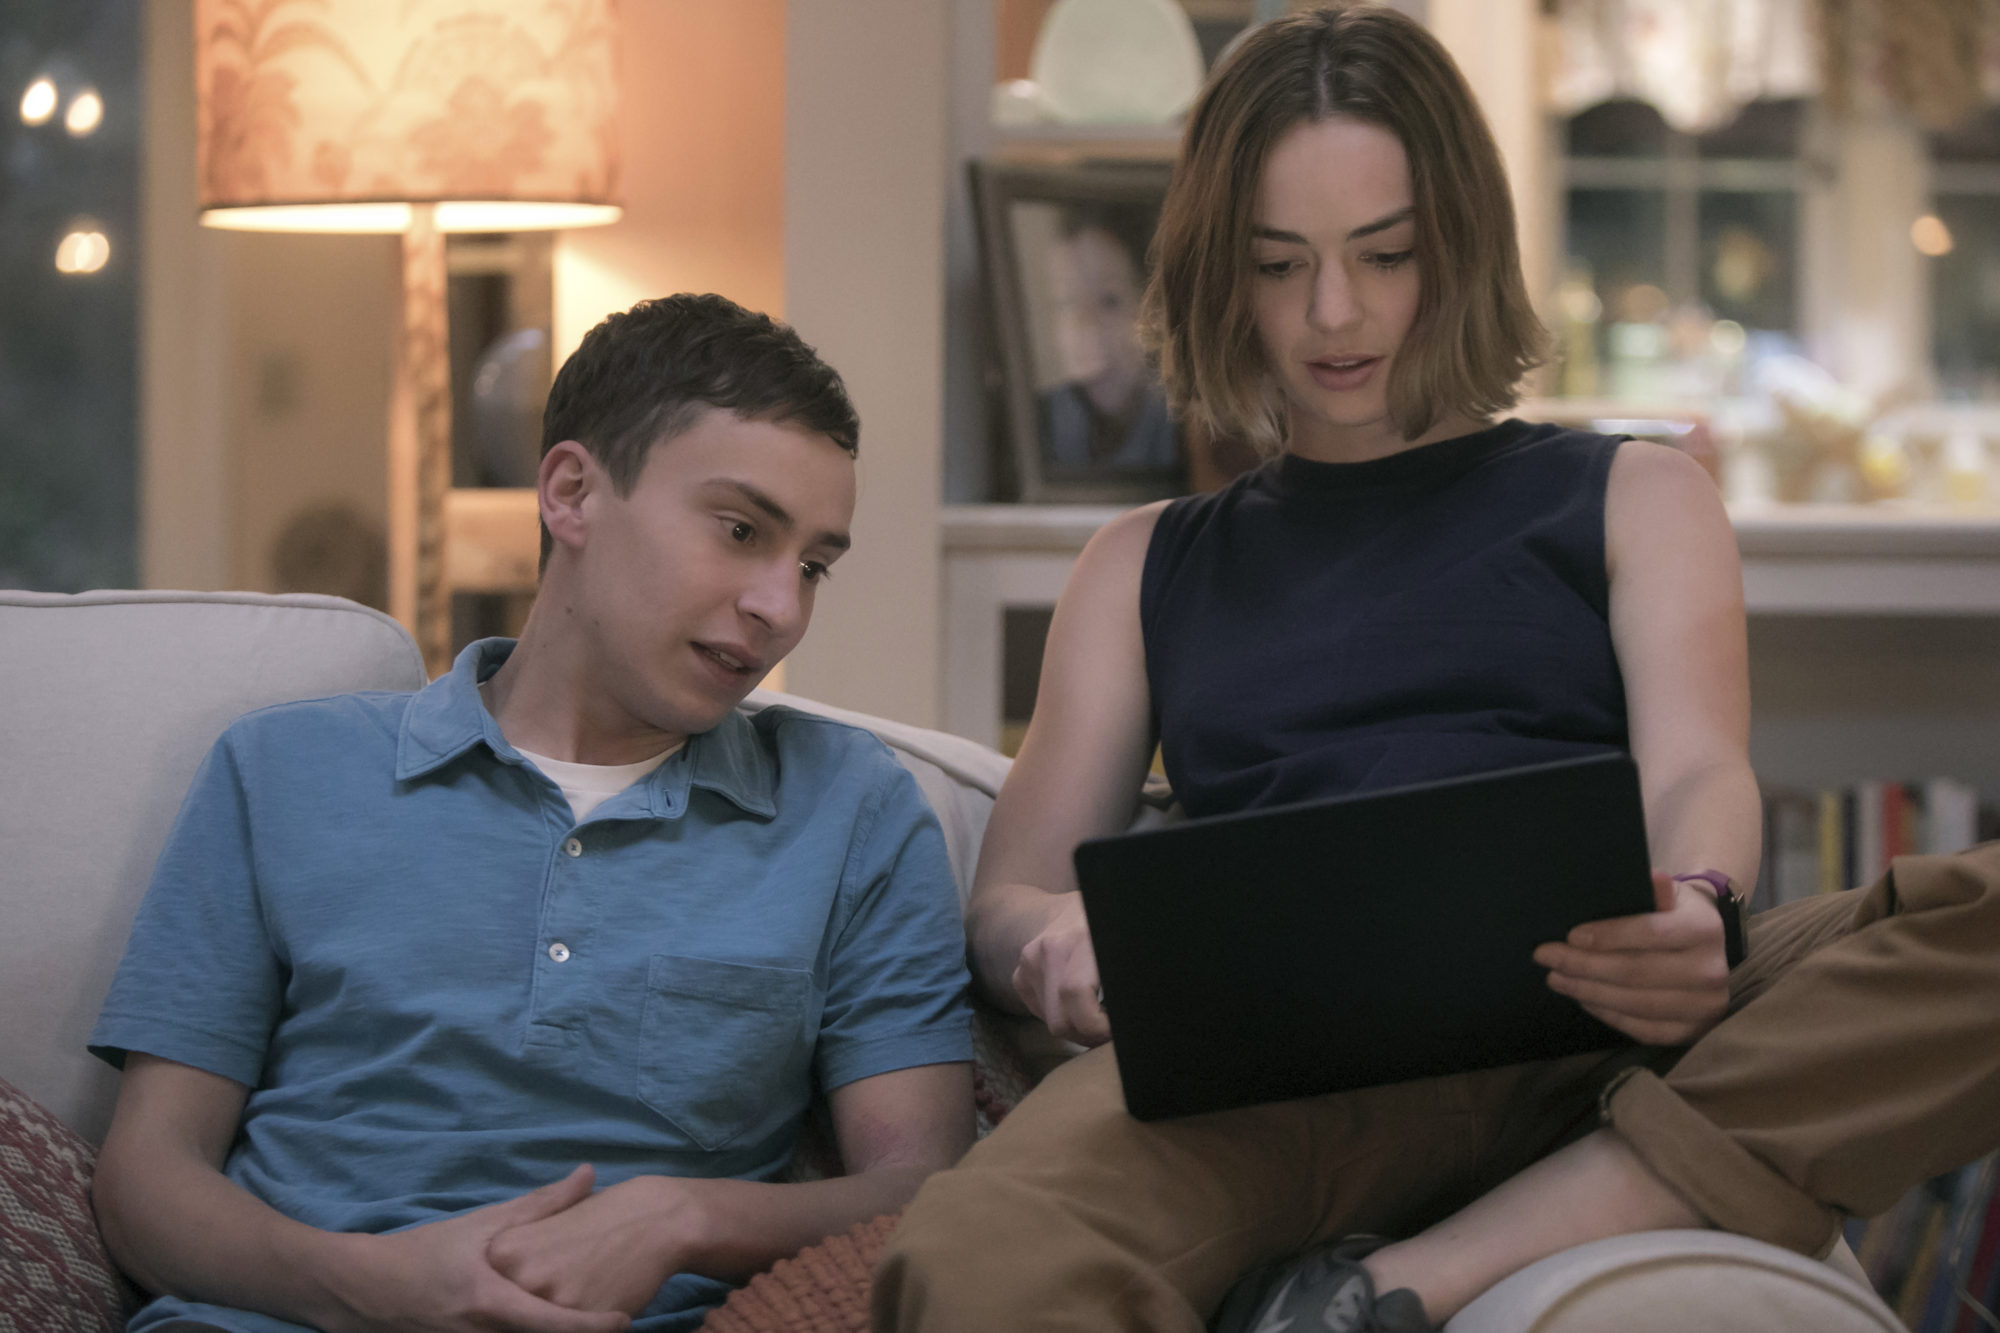 Atypical - A Differently Wired Family on the Small Screen